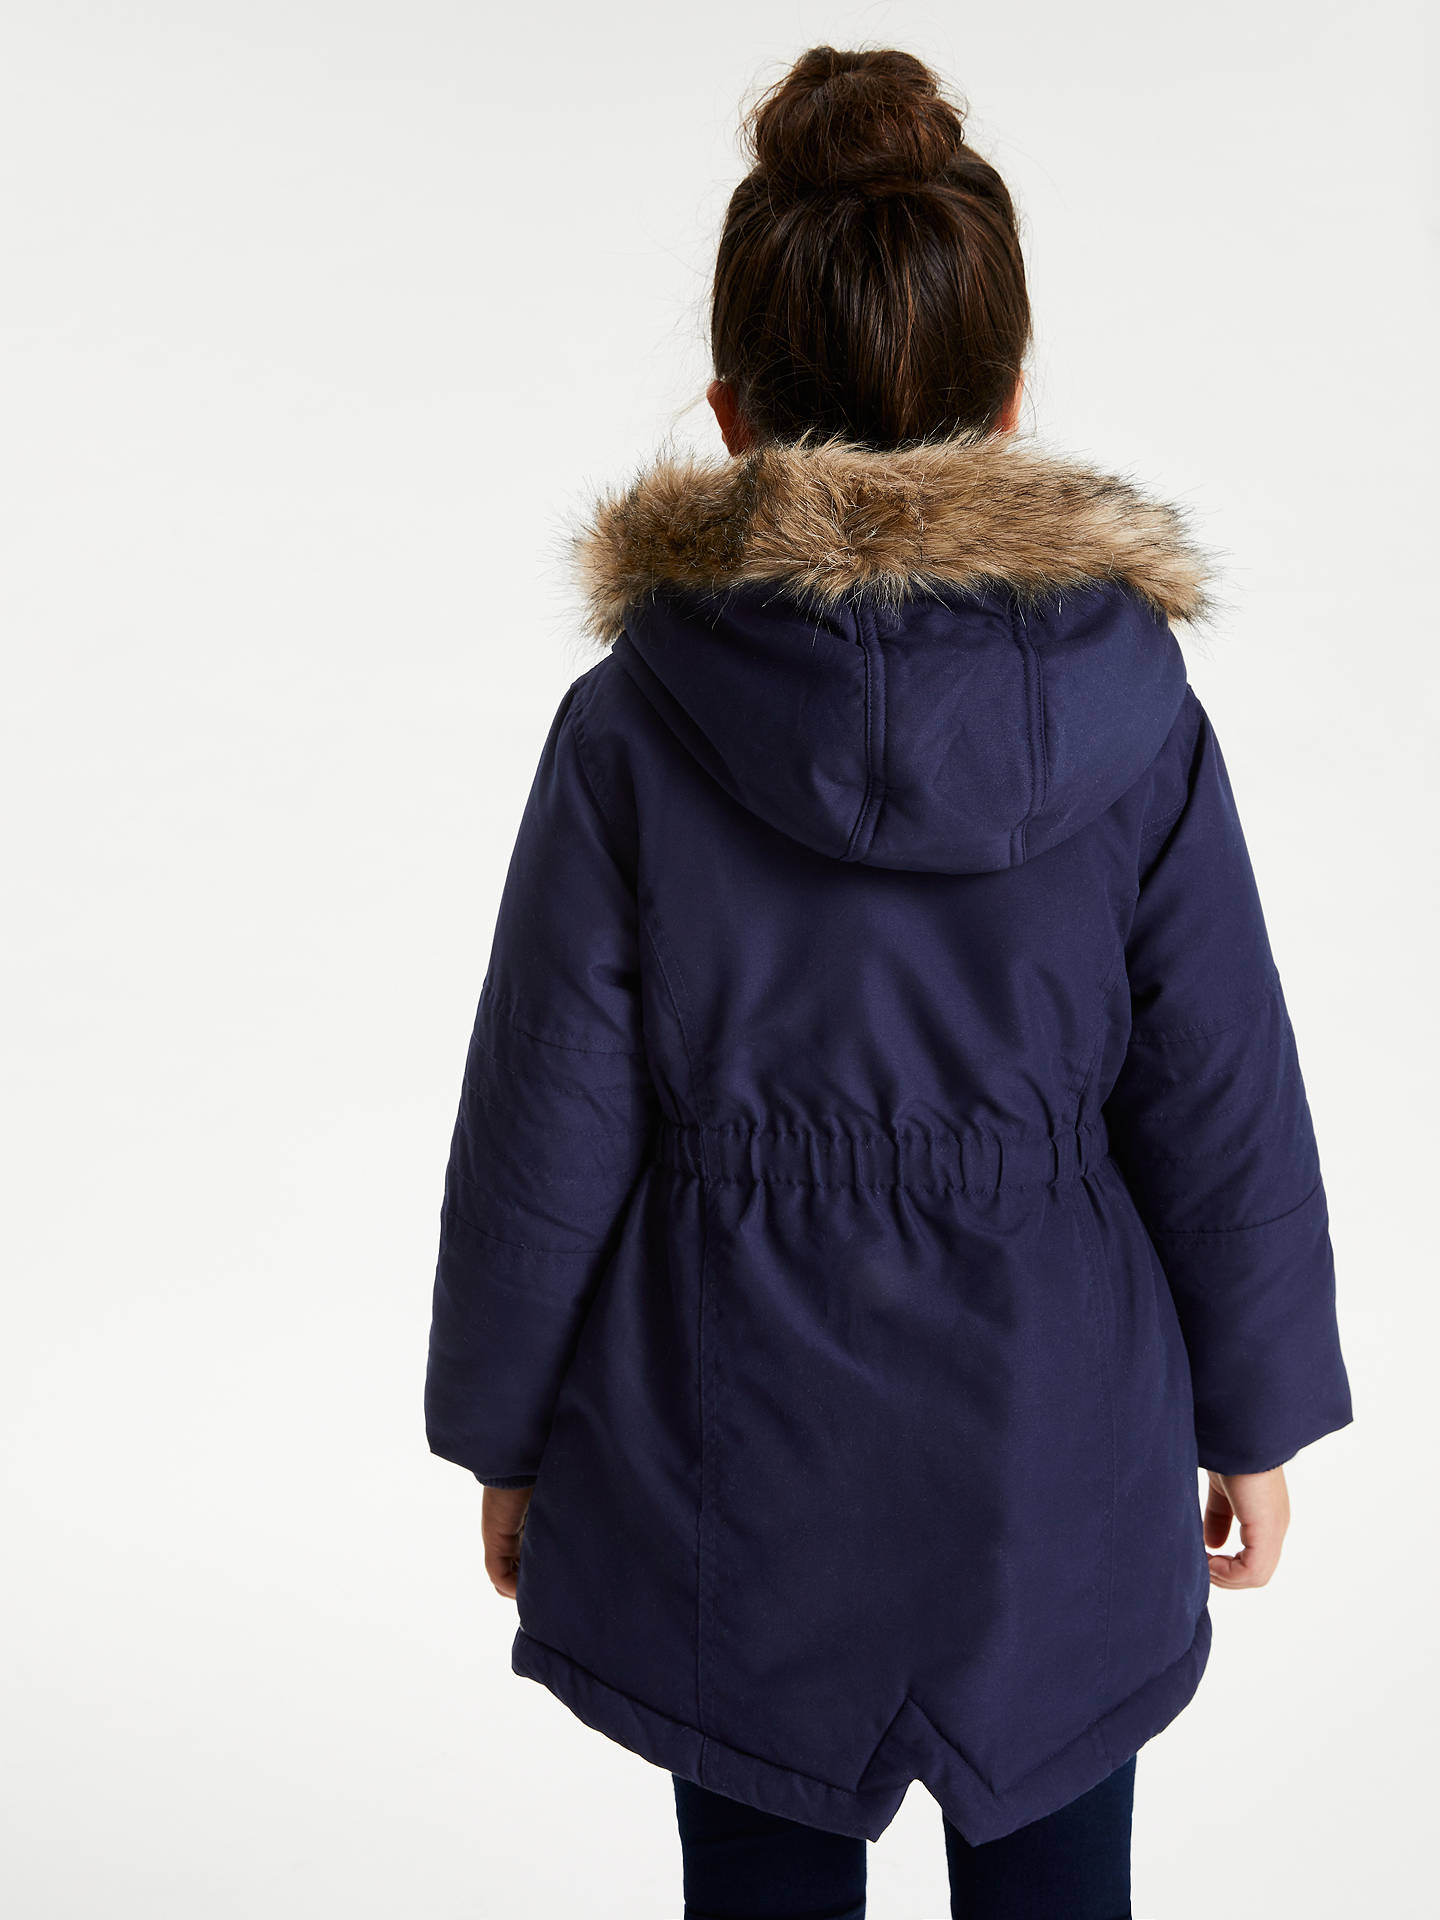 BuyJohn Lewis & Partners Girls' Parka Coat, Navy, 2 years Online at johnlewis.com